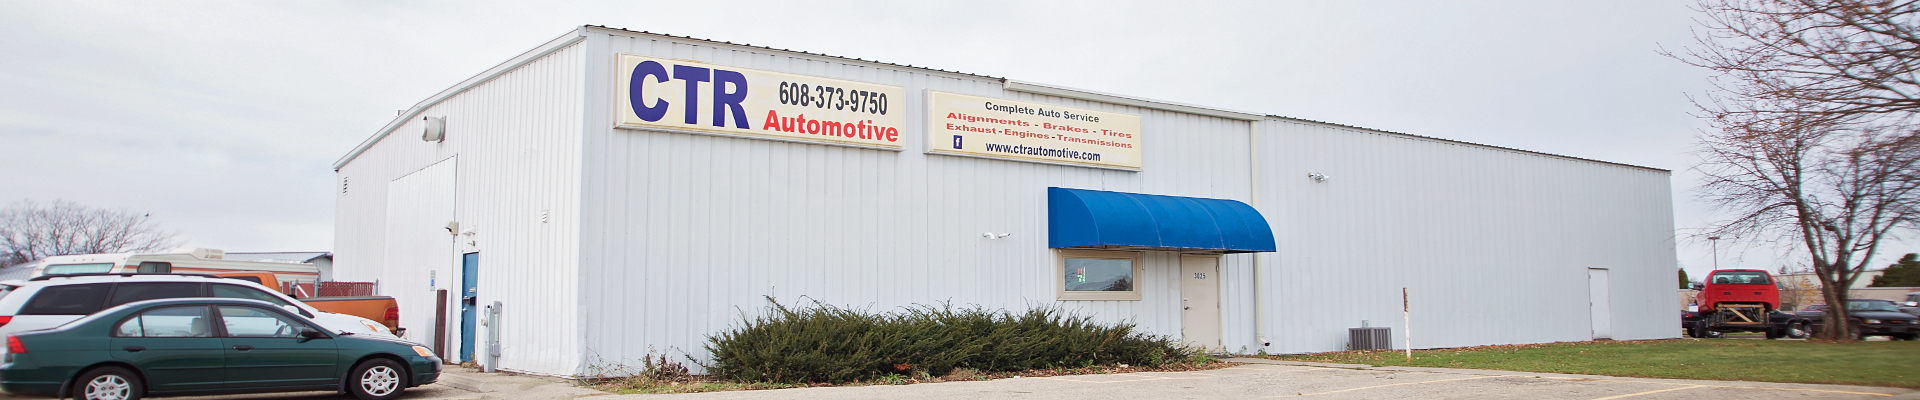 Car repair Janesville wi and Milton wi